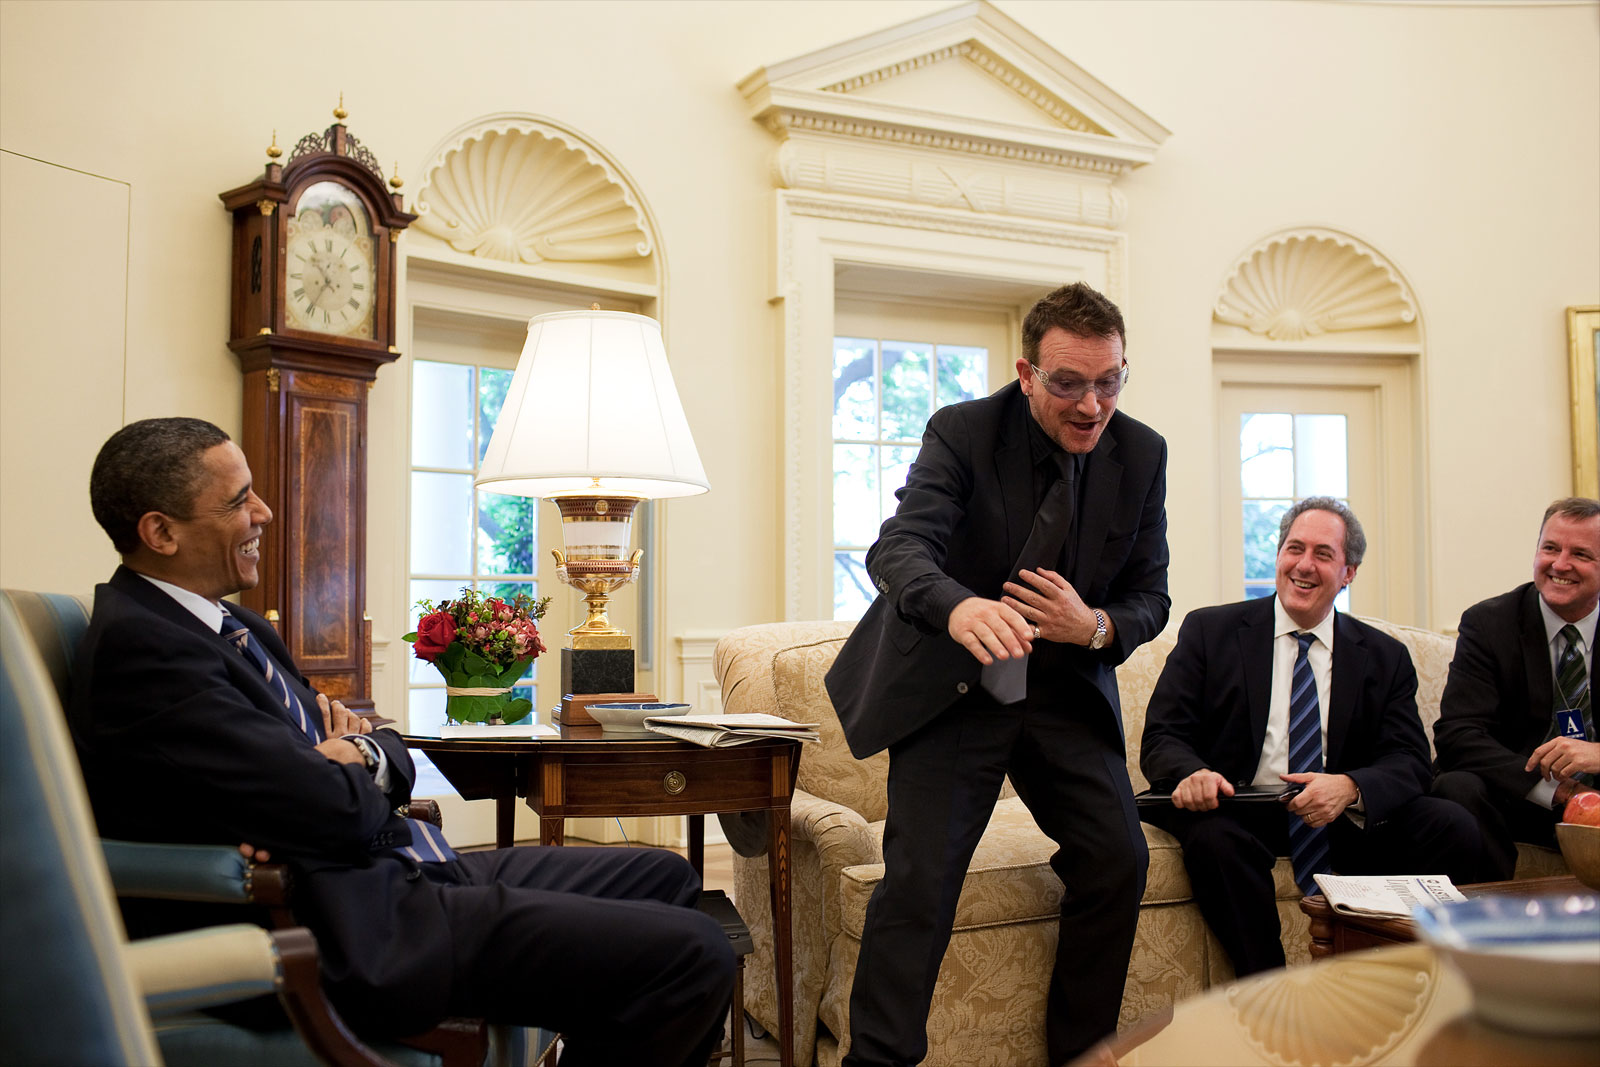 barak obama oval office golds. Bono Is A Fascinating Man And Very Quick-witted. He An Admirer Of President Obama, I Remember Once Heard Say That Obama Had Been Spelled Barak Oval Office Golds